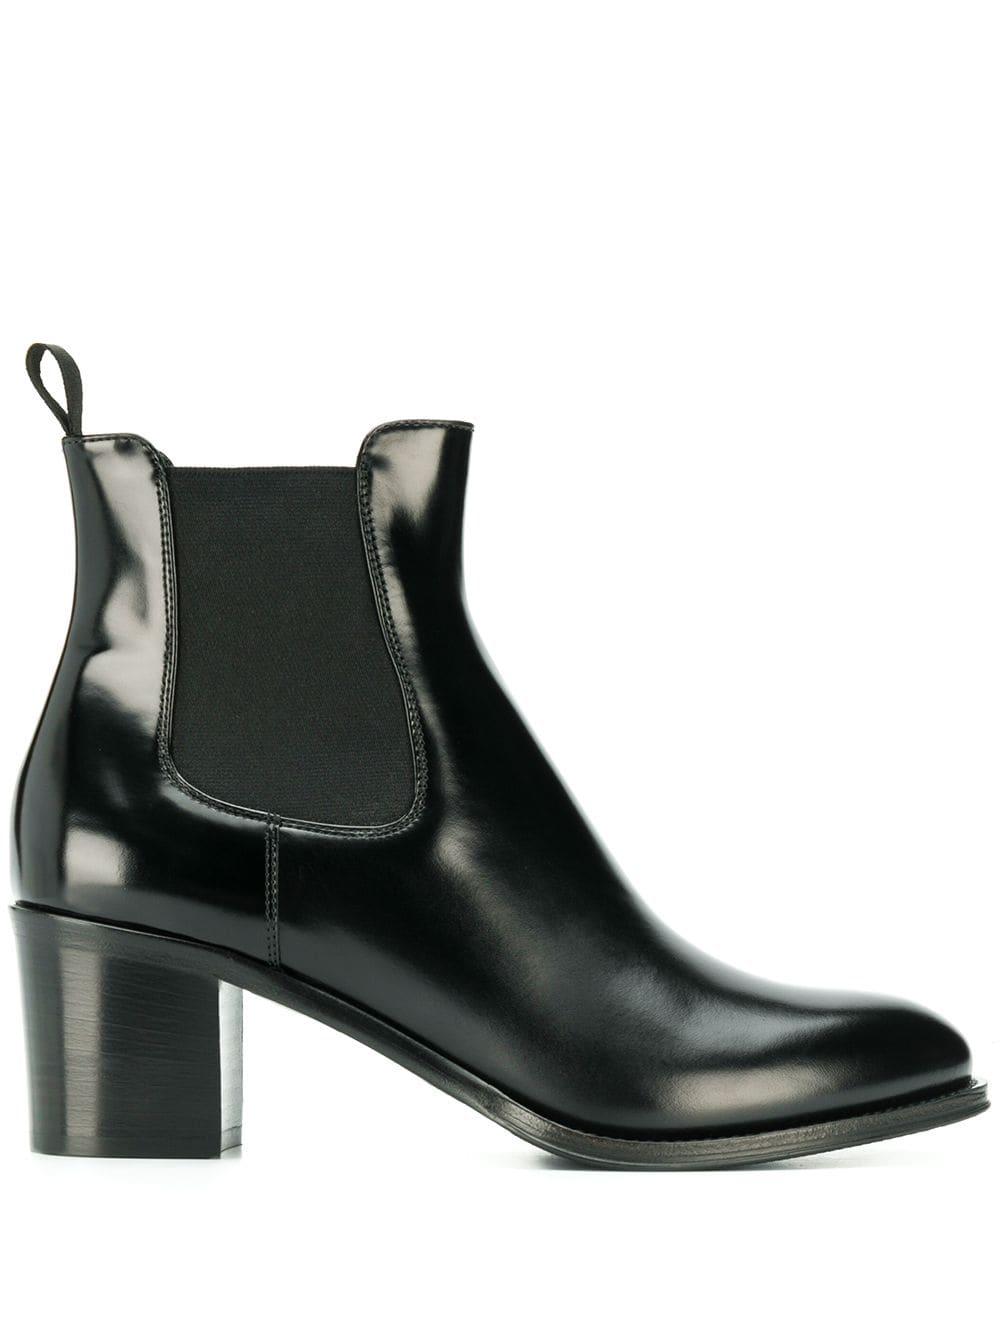 CHURCH'S WOMEN SHIRLEY 55 ANKLE BOOTS